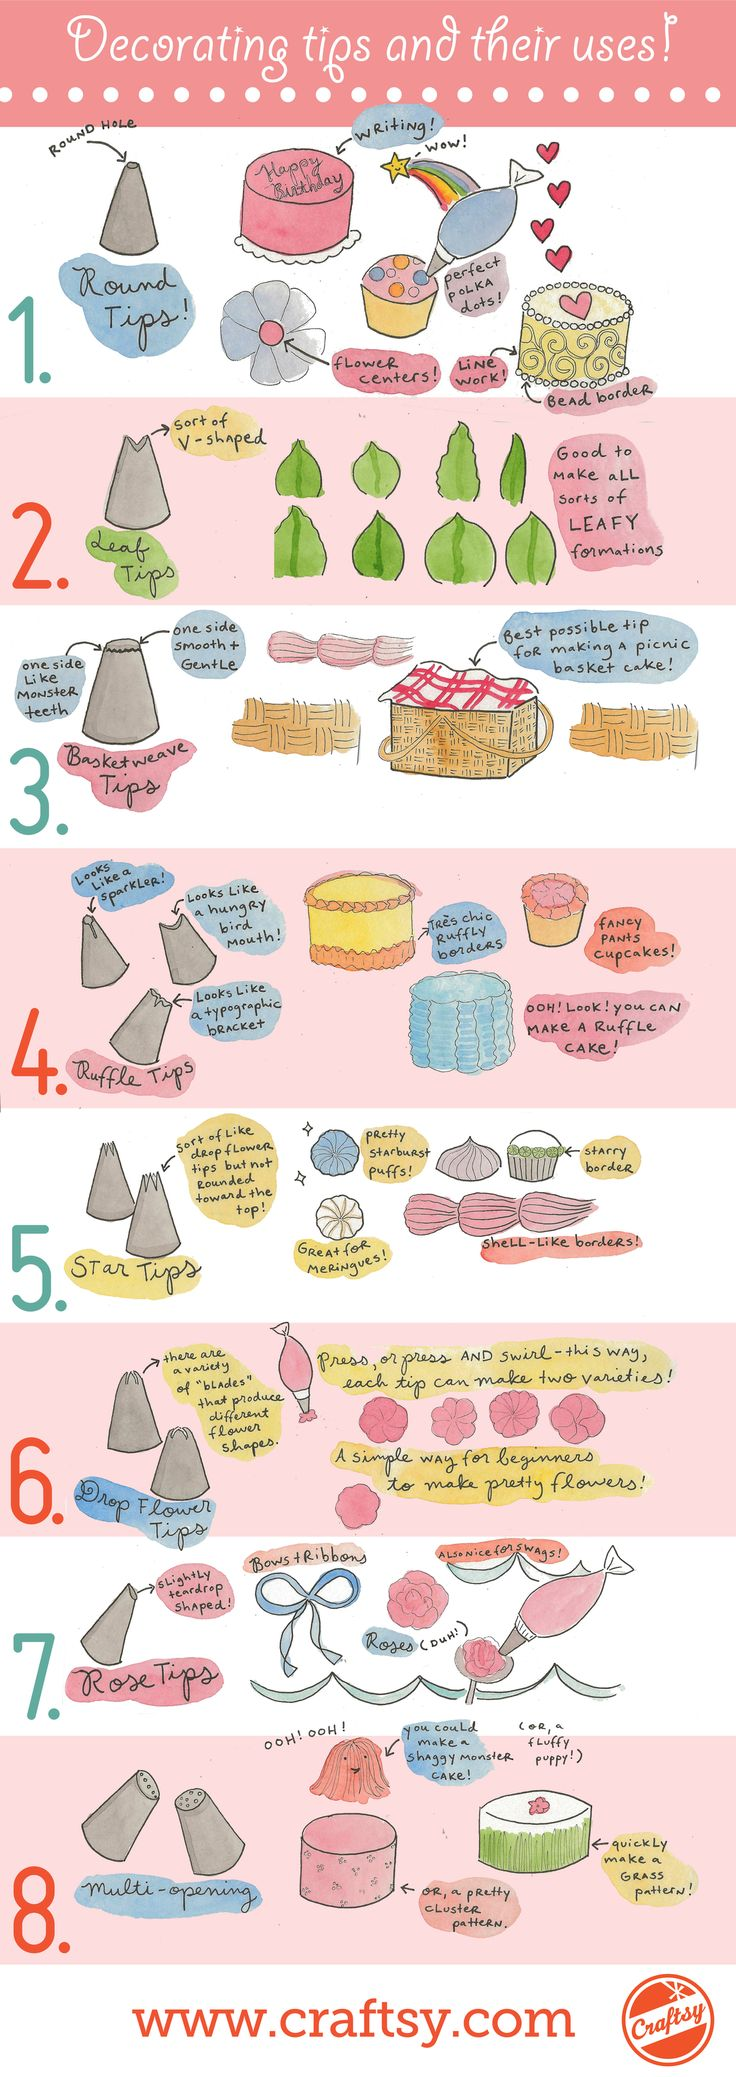 Cake decorating tips and their uses ~ Infographic!